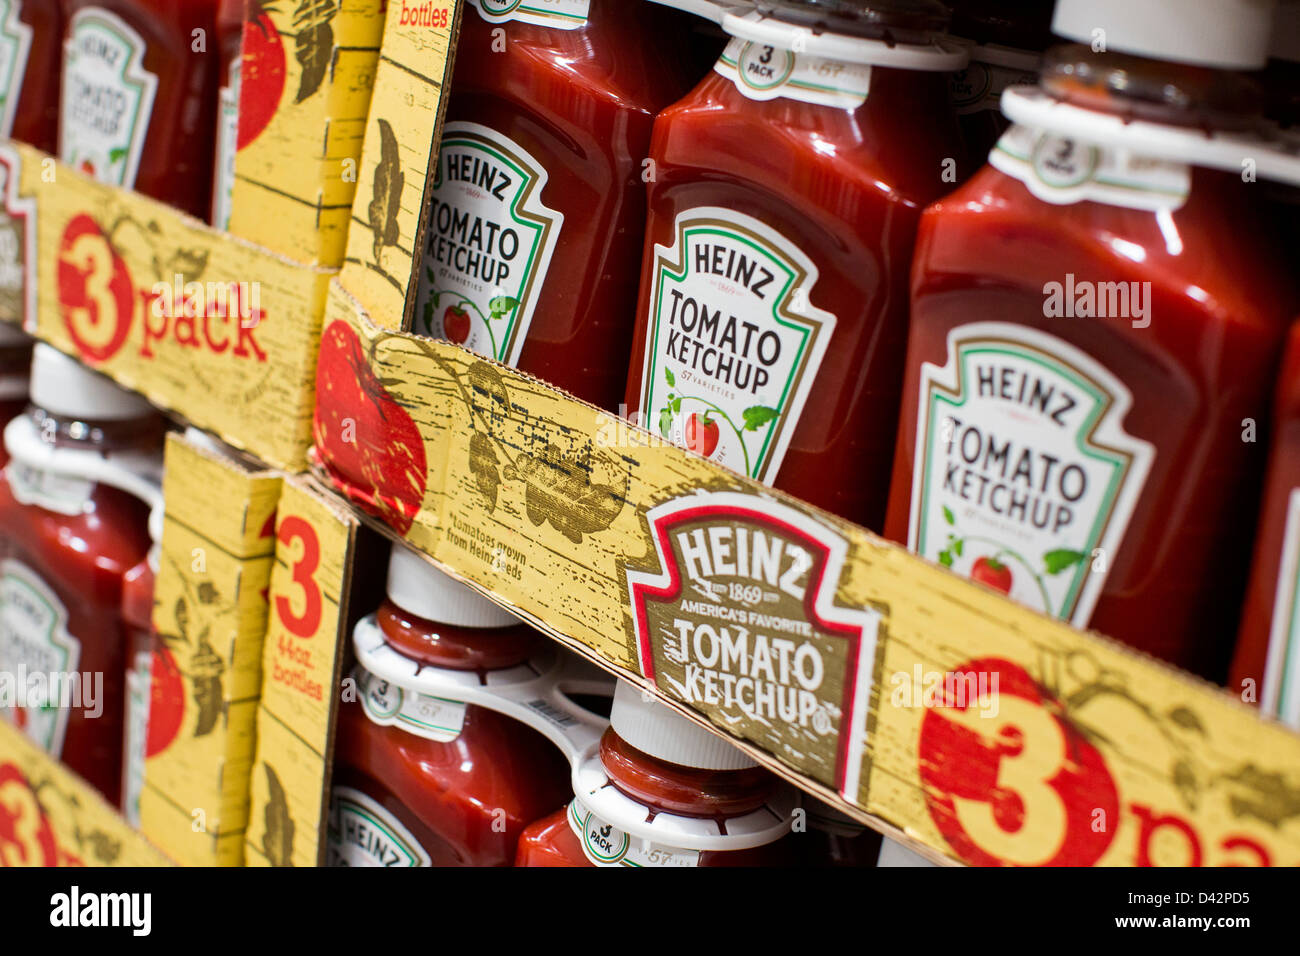 Heinz tomato ketchup on display at a costco wholesale warehouse club heinz tomato ketchup on display at a costco wholesale warehouse club stock photo 54151249 alamy thecheapjerseys Images